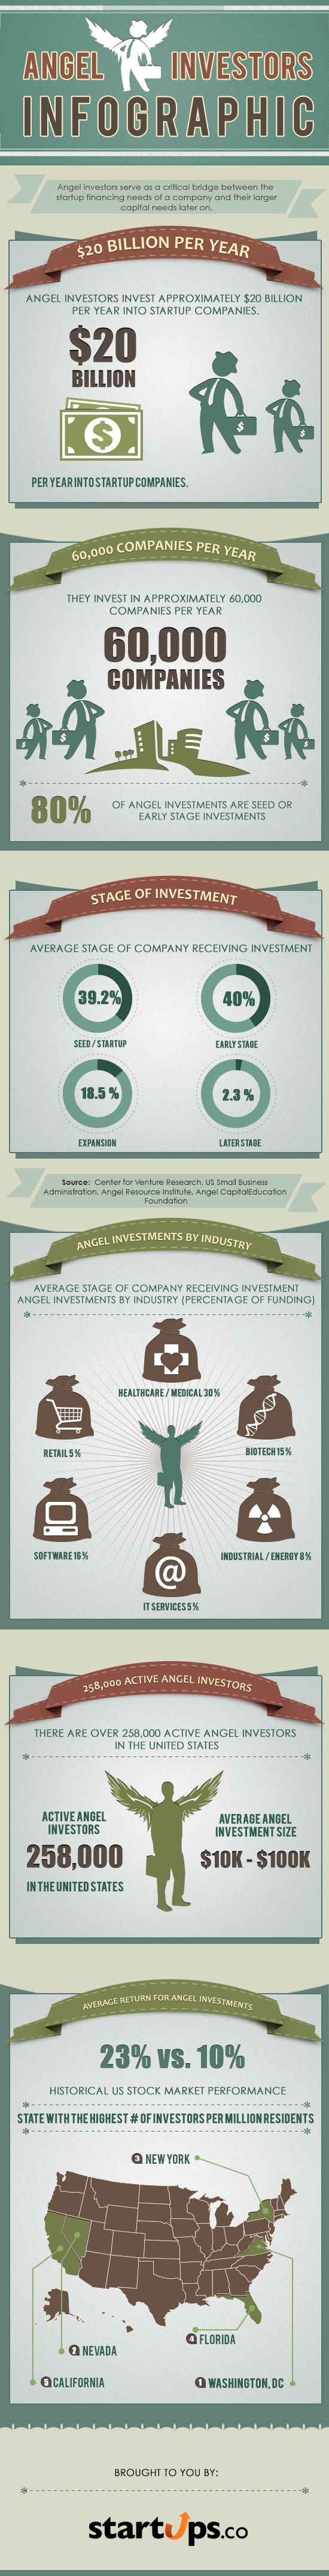 Angel investors put $20Bn a year into startups. #infographic #tech #investment